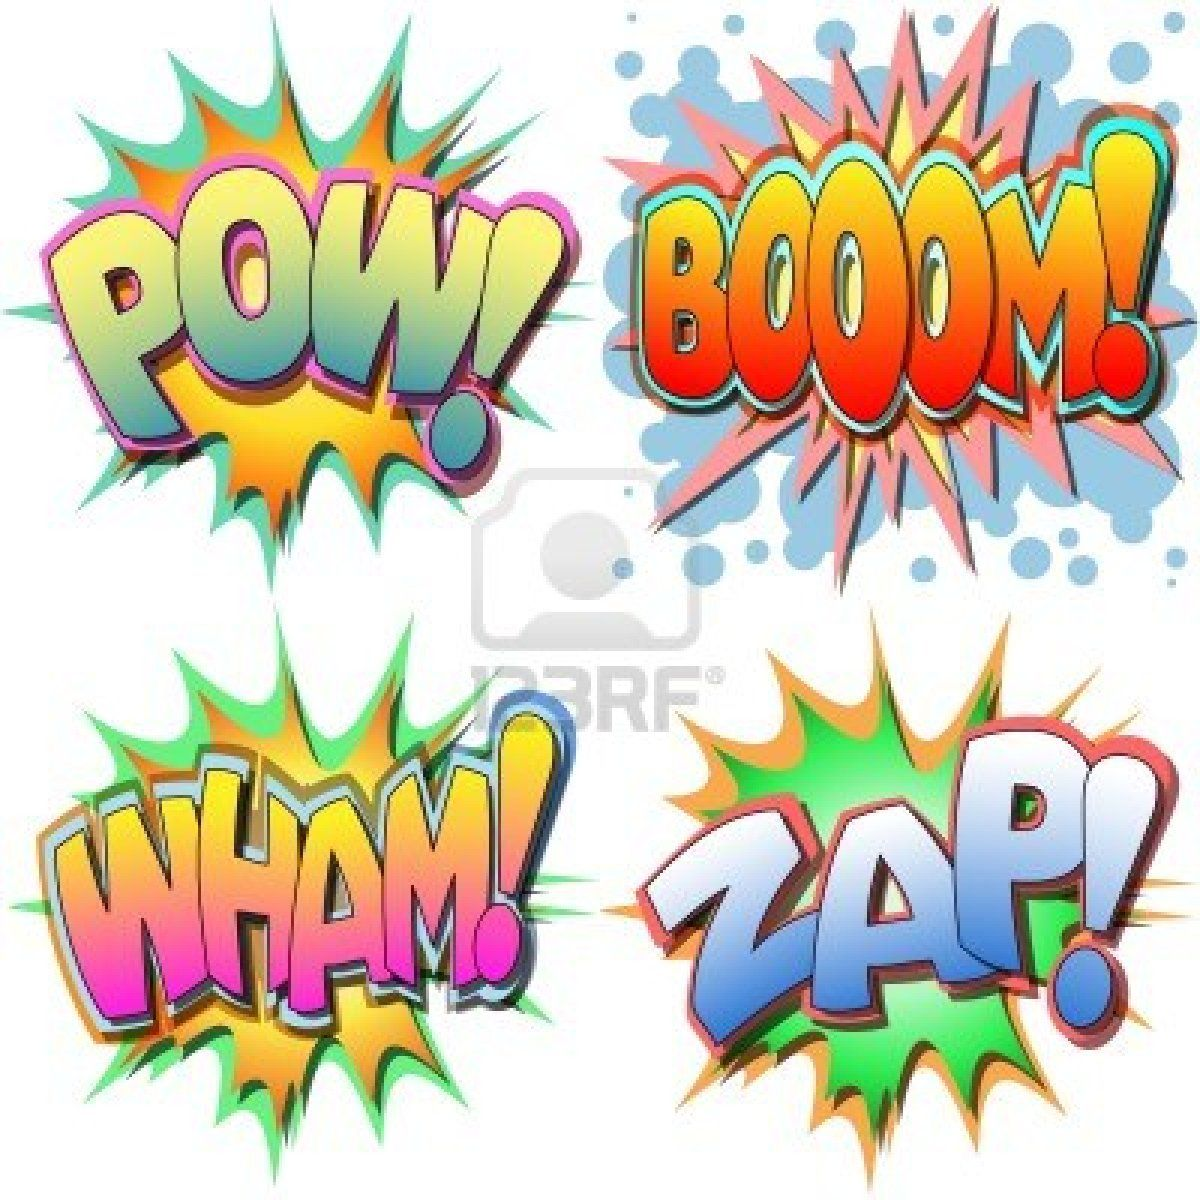 Boom clipart animated. A selection of comic